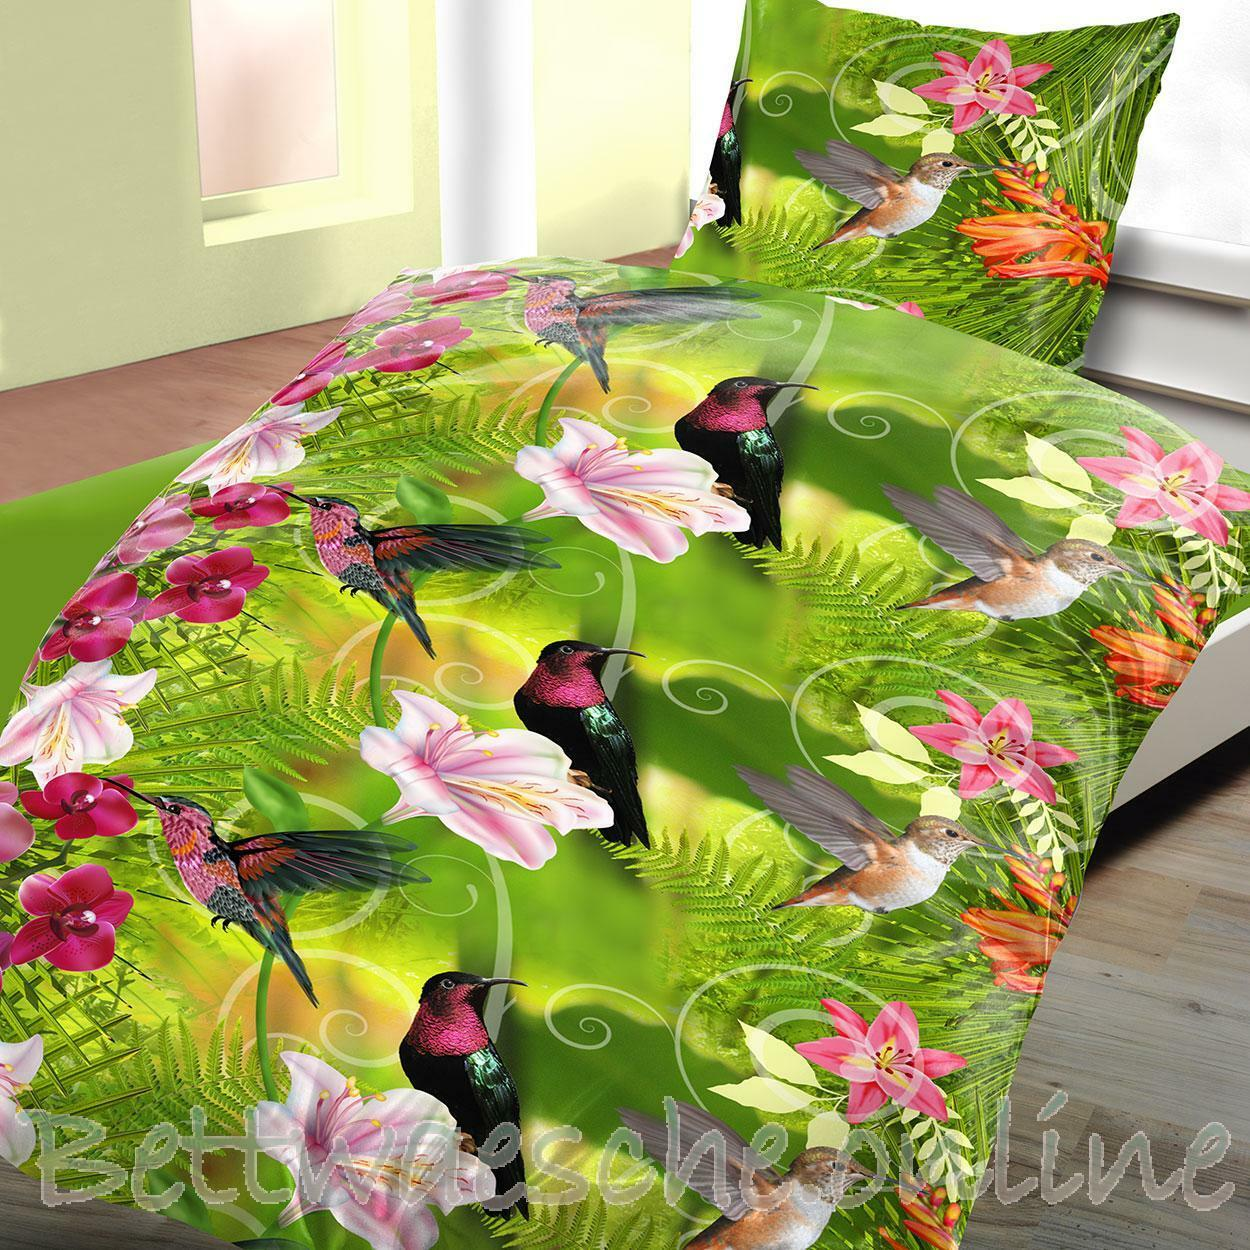 linon baumwoll bettw sche 135x200 cm 2 teilig jungle blumen v gel eur 9 95 picclick de. Black Bedroom Furniture Sets. Home Design Ideas